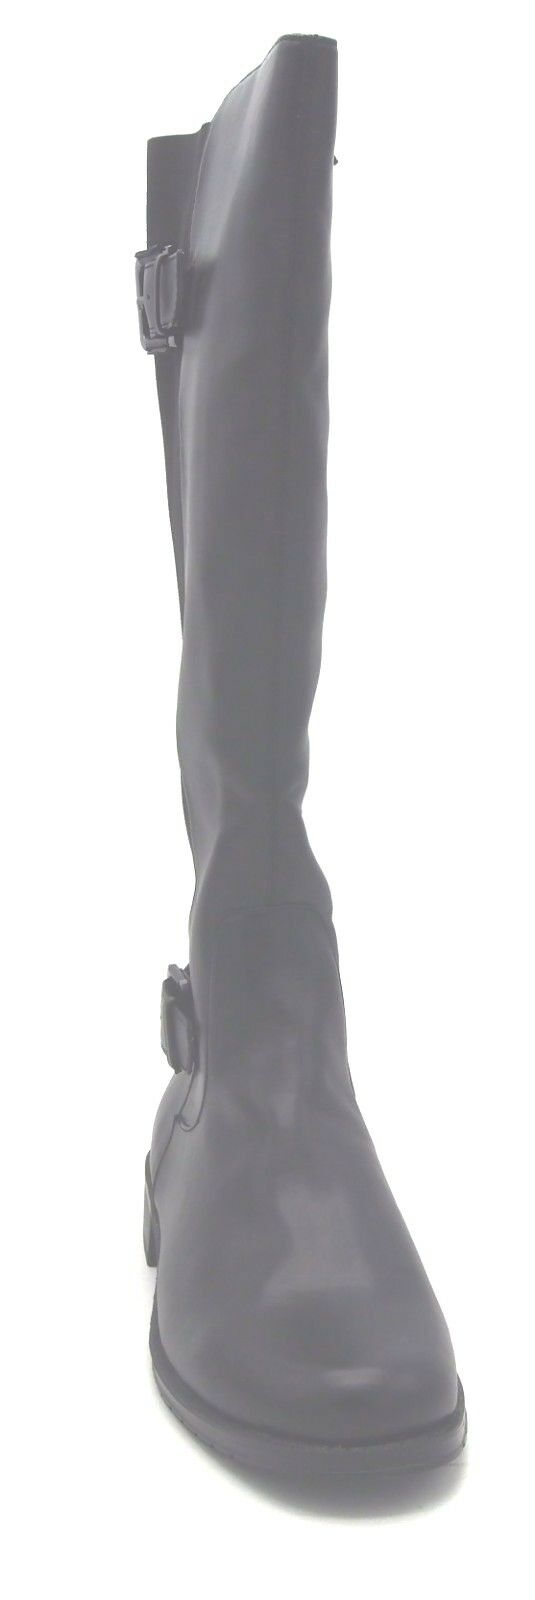 J7281 New New New Women's Aerosoles Tried N True Black Knee High Boot 5.5 M 301beb